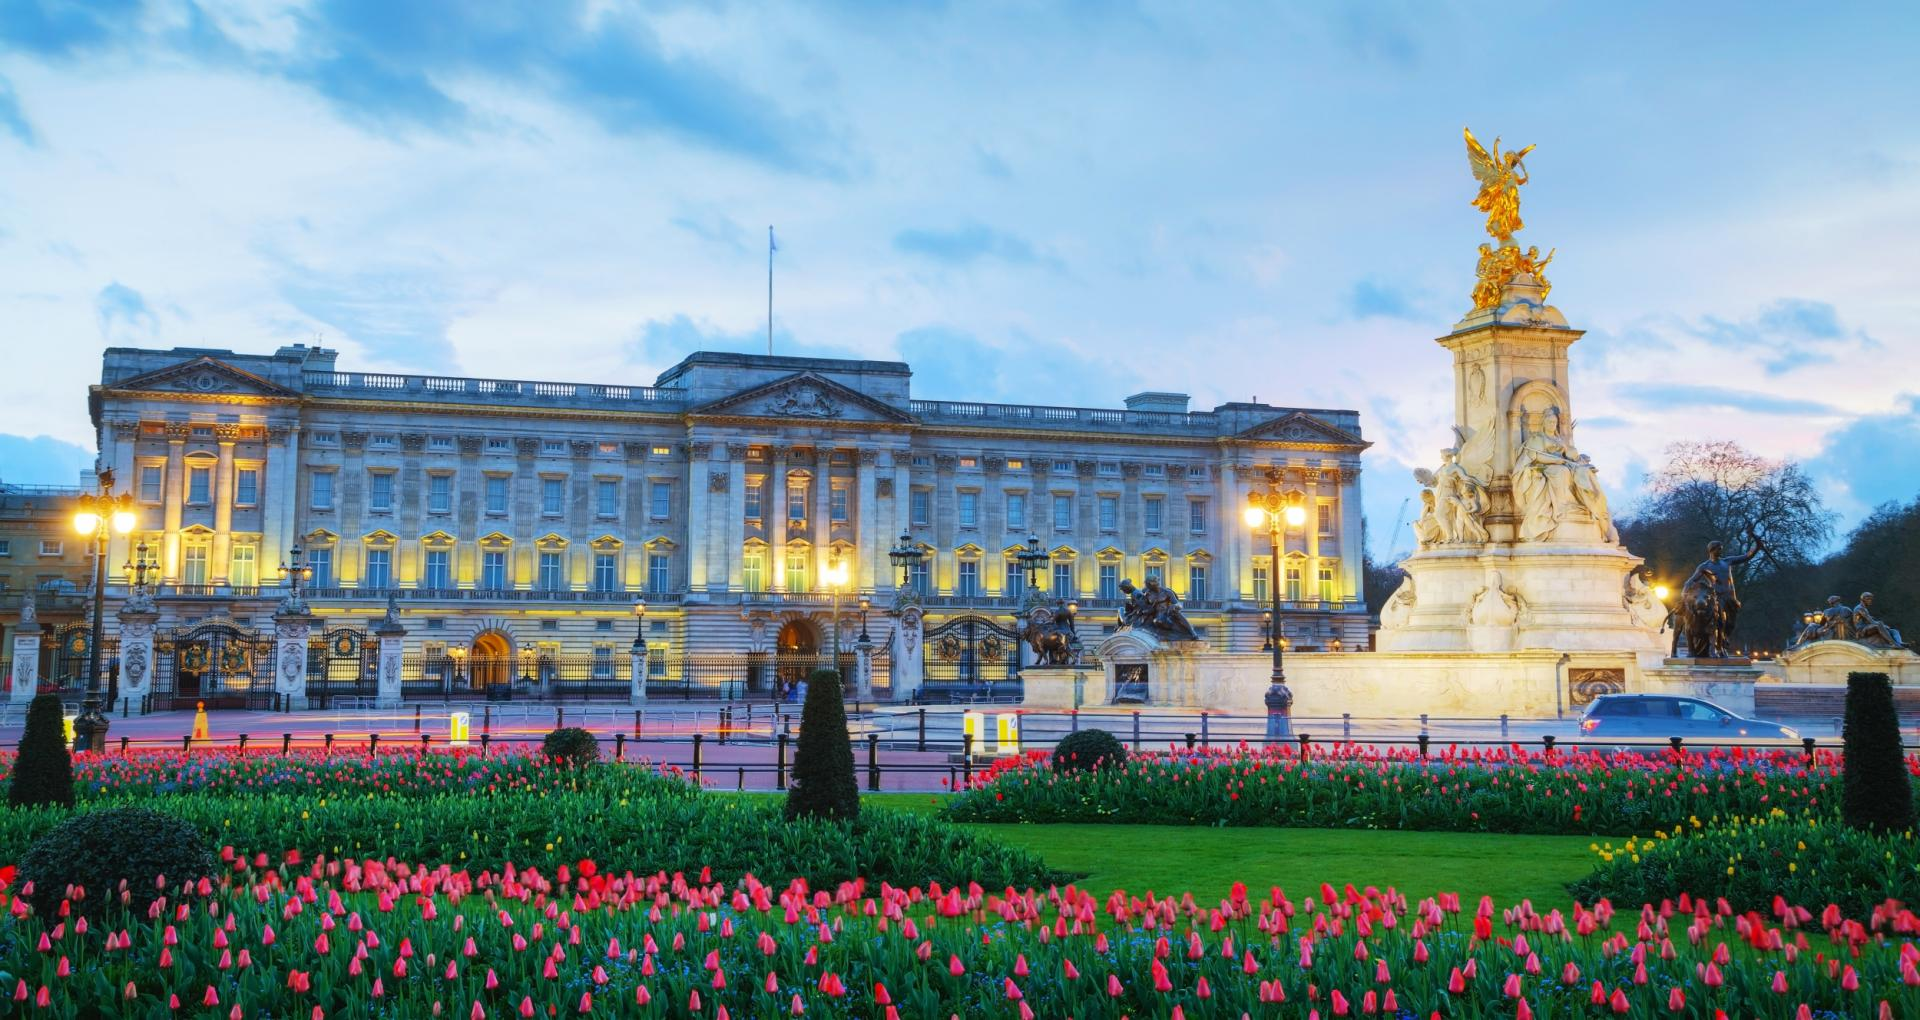 El Buckingham Palace en Londres